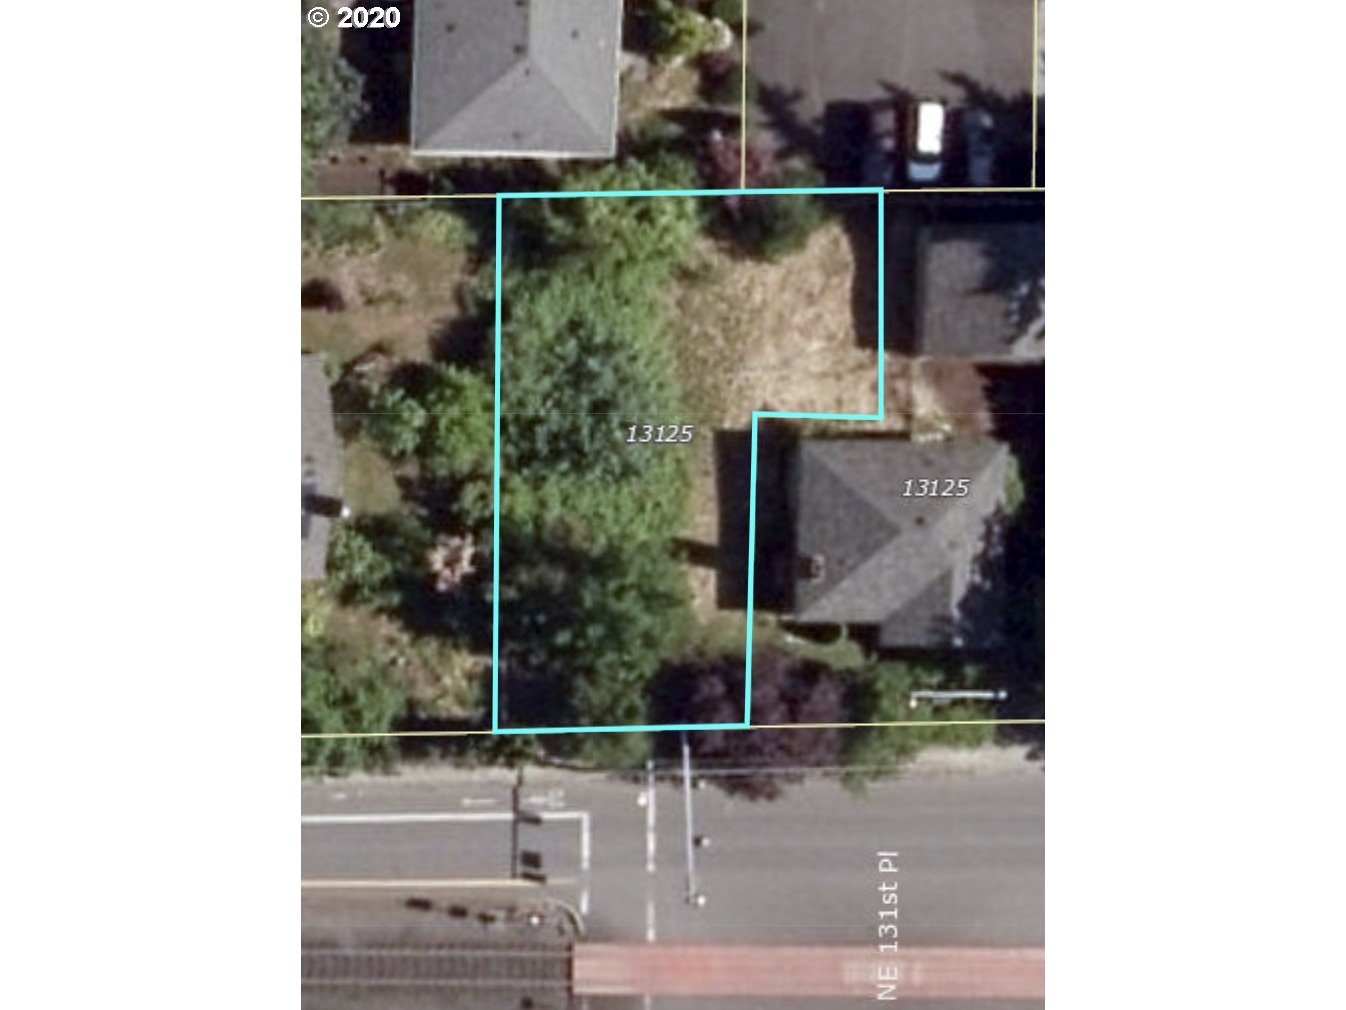 13125 E BURNSIDE ST, Portland, Oregon 97233, ,Lots And Land,For Sale,13125 E BURNSIDE ST,20572021